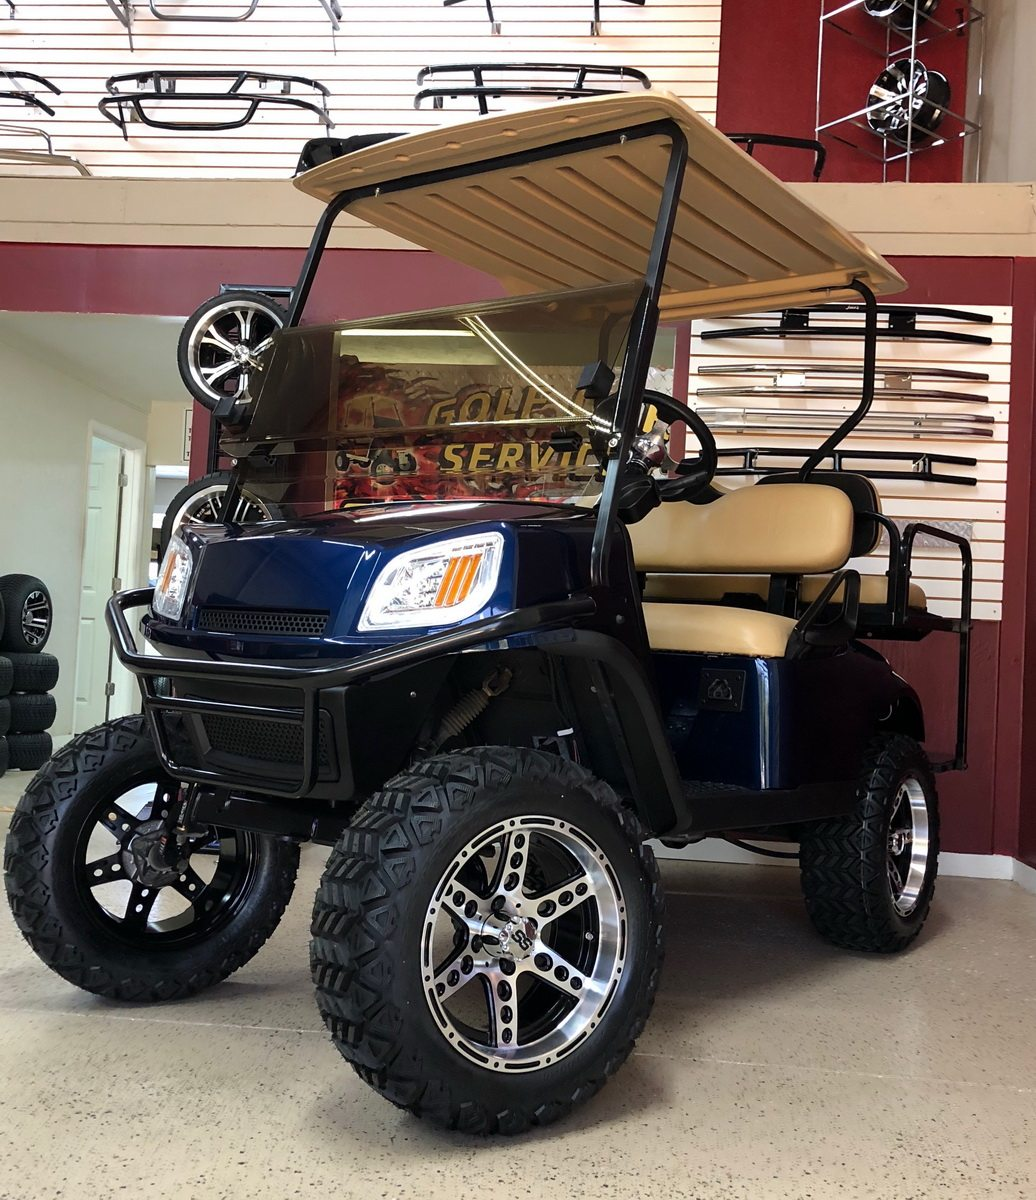 Blue EZGO Terrain lifted with custom wheels & rims